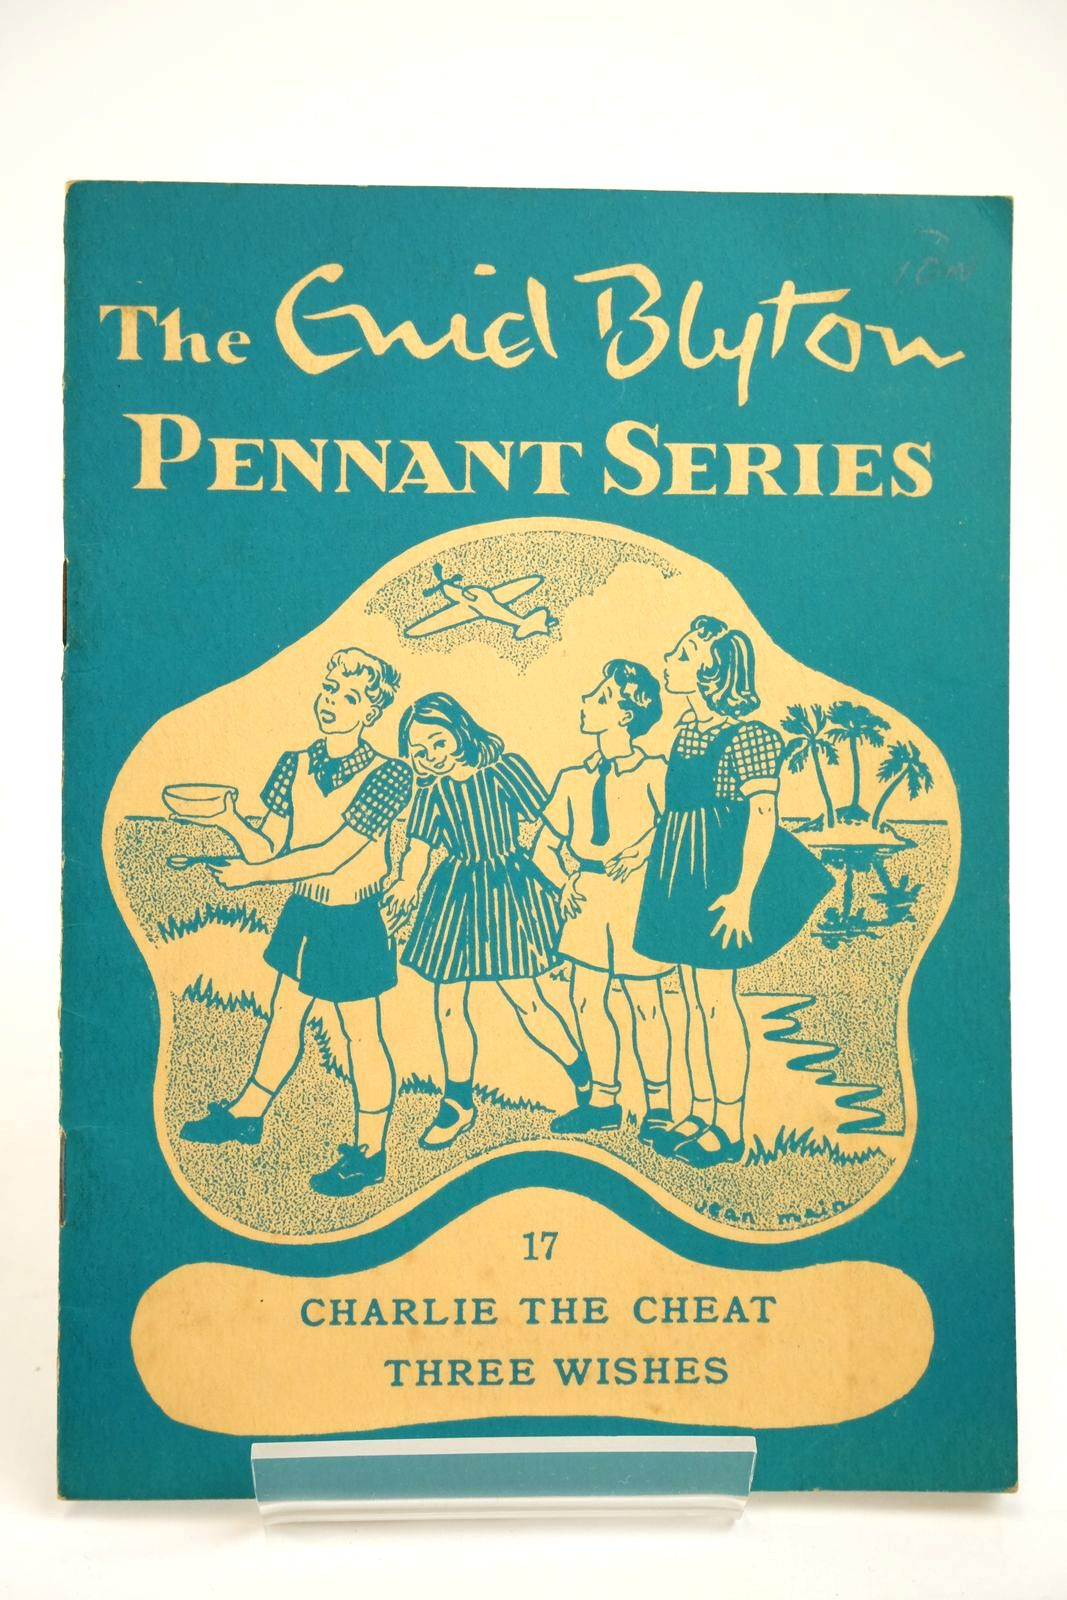 Photo of THE ENID BLYTON PENNANT SERIES No. 17 CHARLIE THE CHEAT / THREE WISHES- Stock Number: 2135163